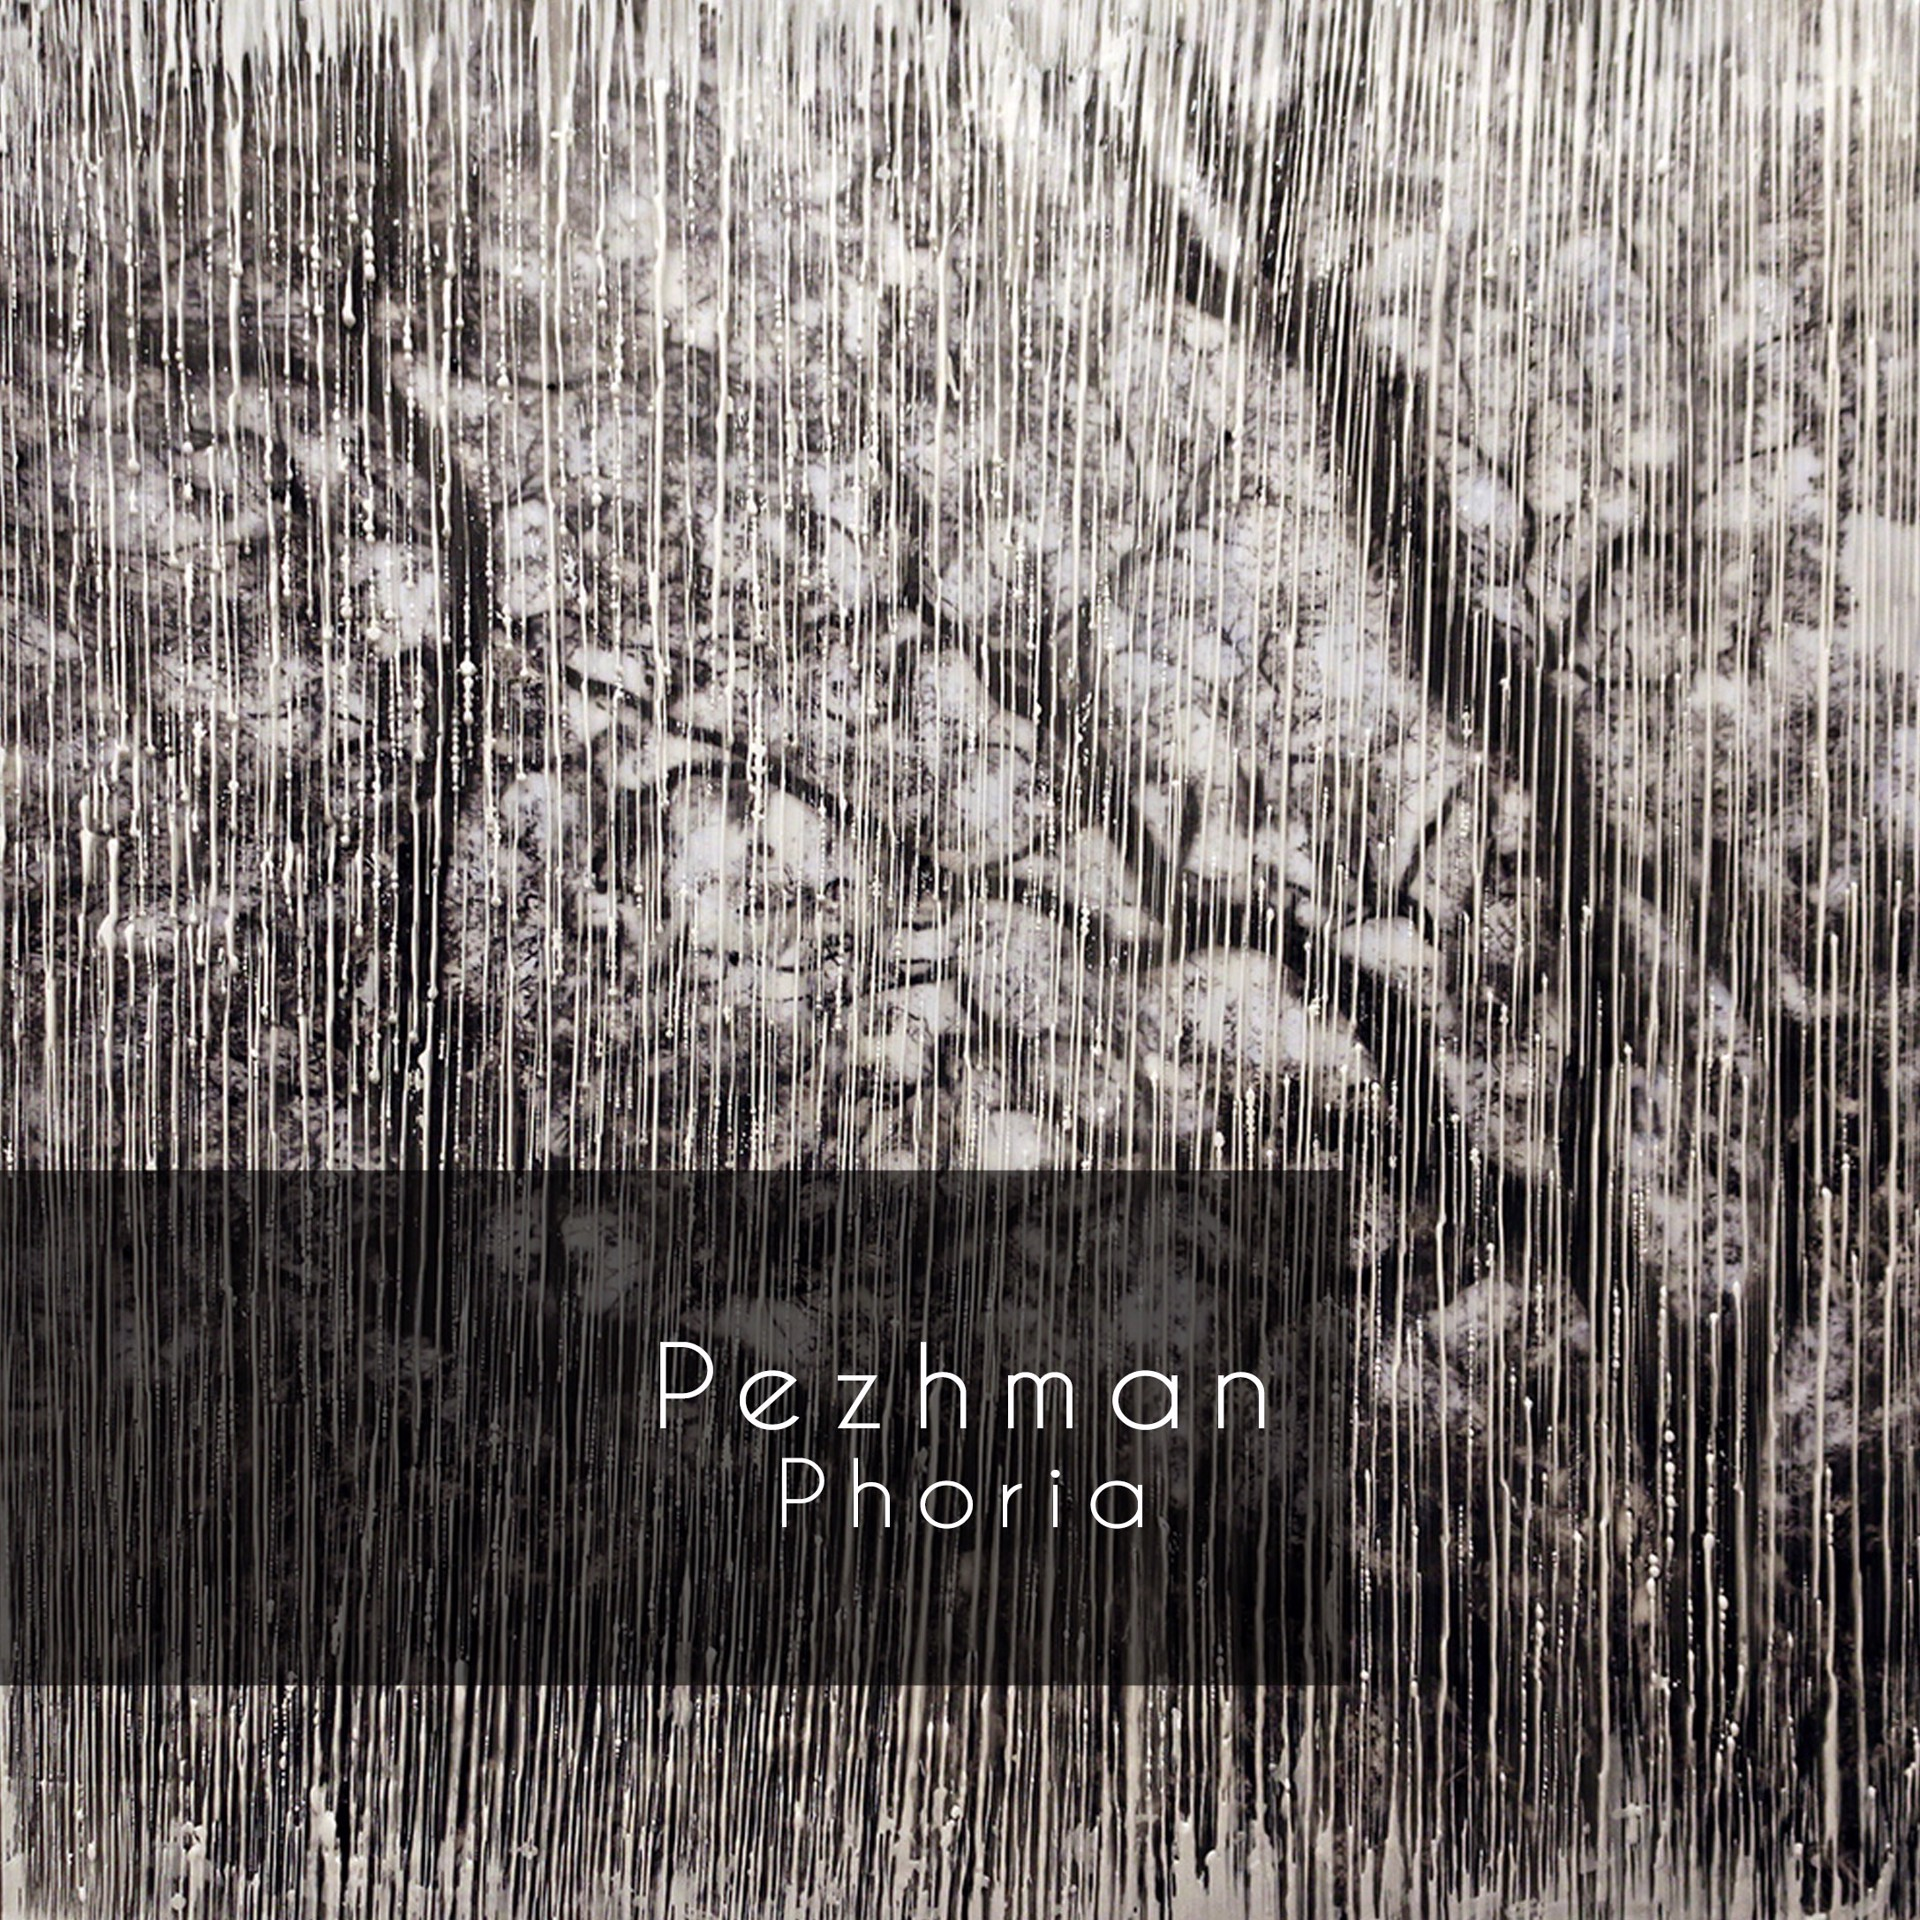 Pezhman: Phoria by Publications